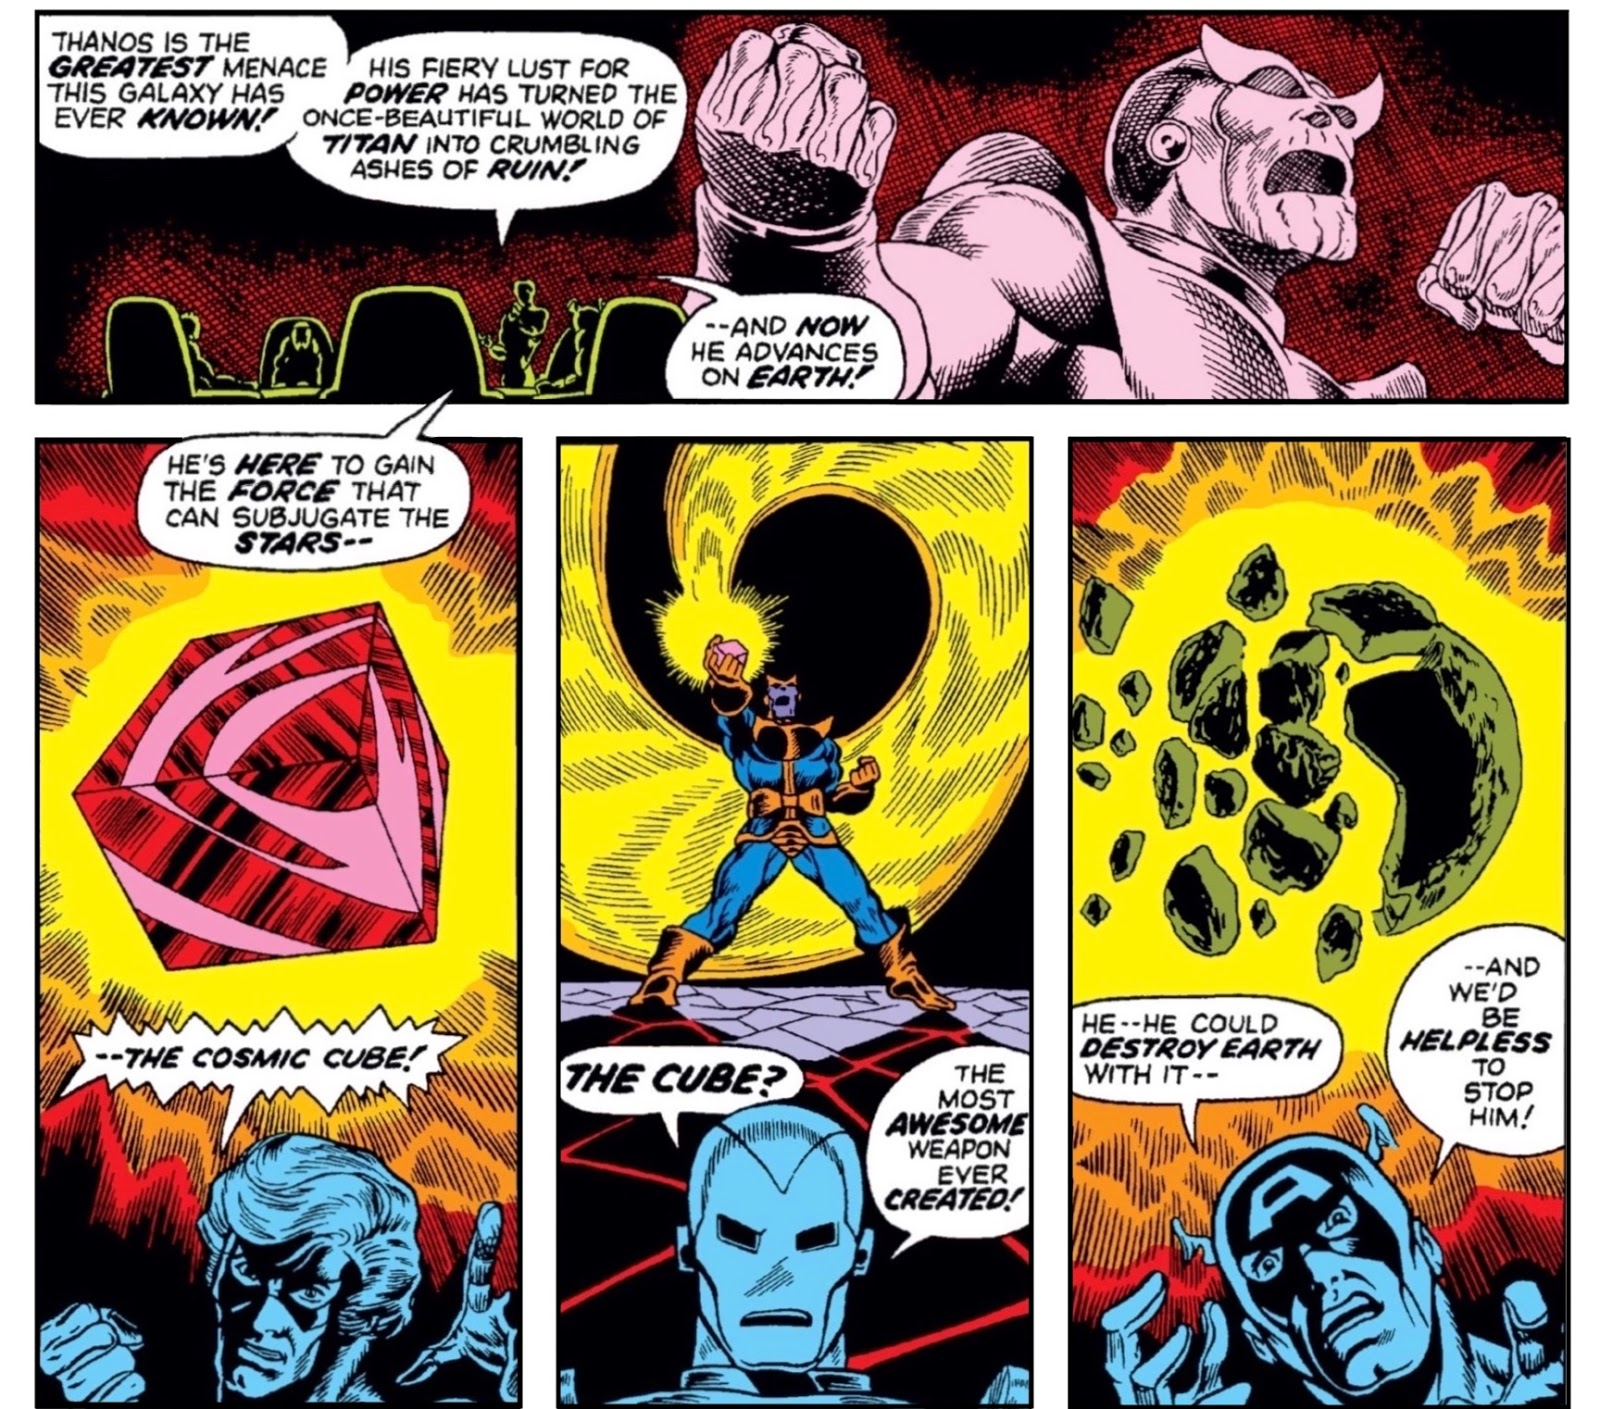 4 panels of Captain Marvel relating Thanos' menace and quest for the Cosmic Cube to Avengers; shown are Iron Man and Captain America